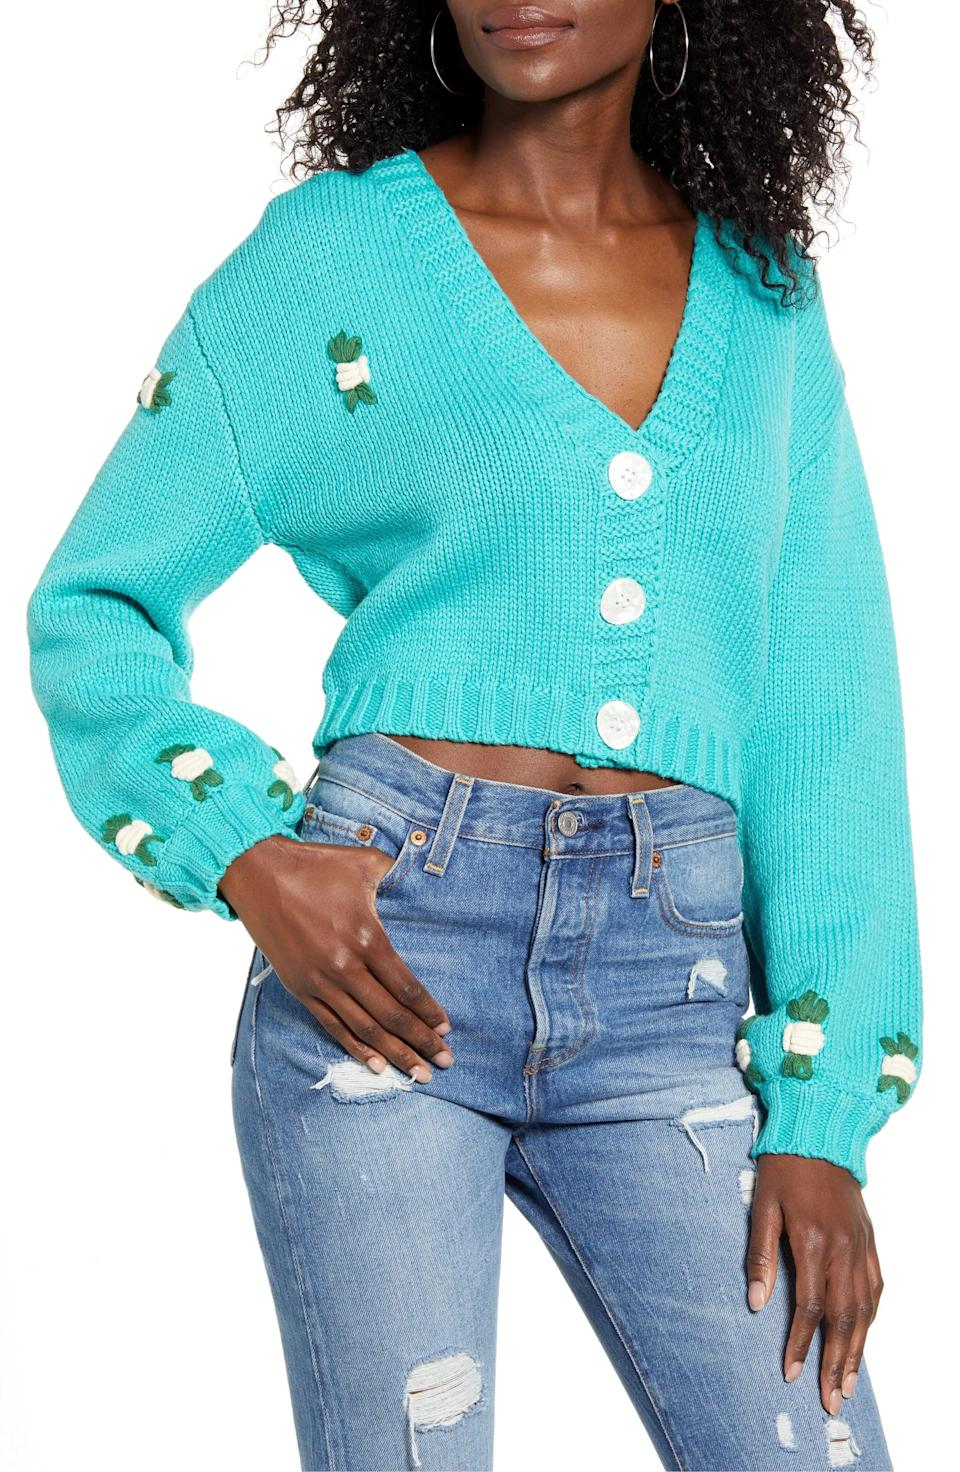 <p>This colorful <span>Tegan Floral Crop Cardigan Sweater</span> ($108) provides ample warmth while looking stylish for date night.</p>